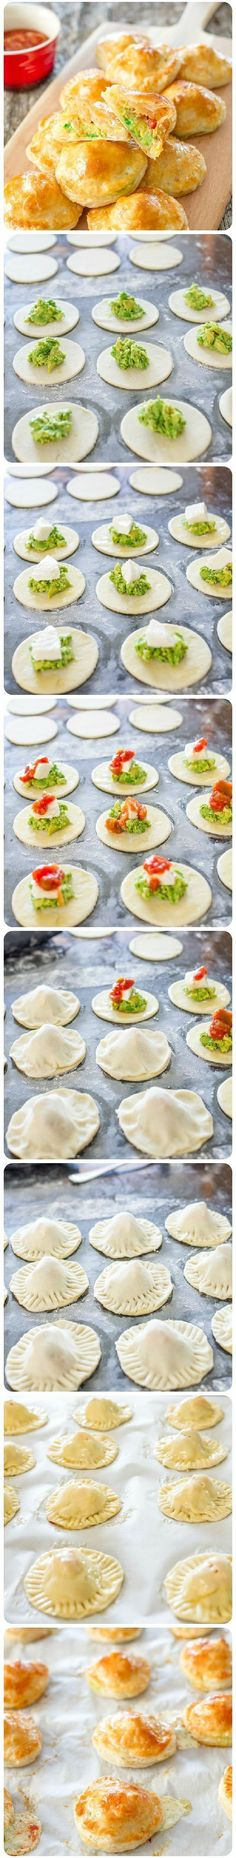 Avocado Mozza Puffs - little puff pastry morsels filled with mashed avocado, fresh mozzarella cheese and salsa.